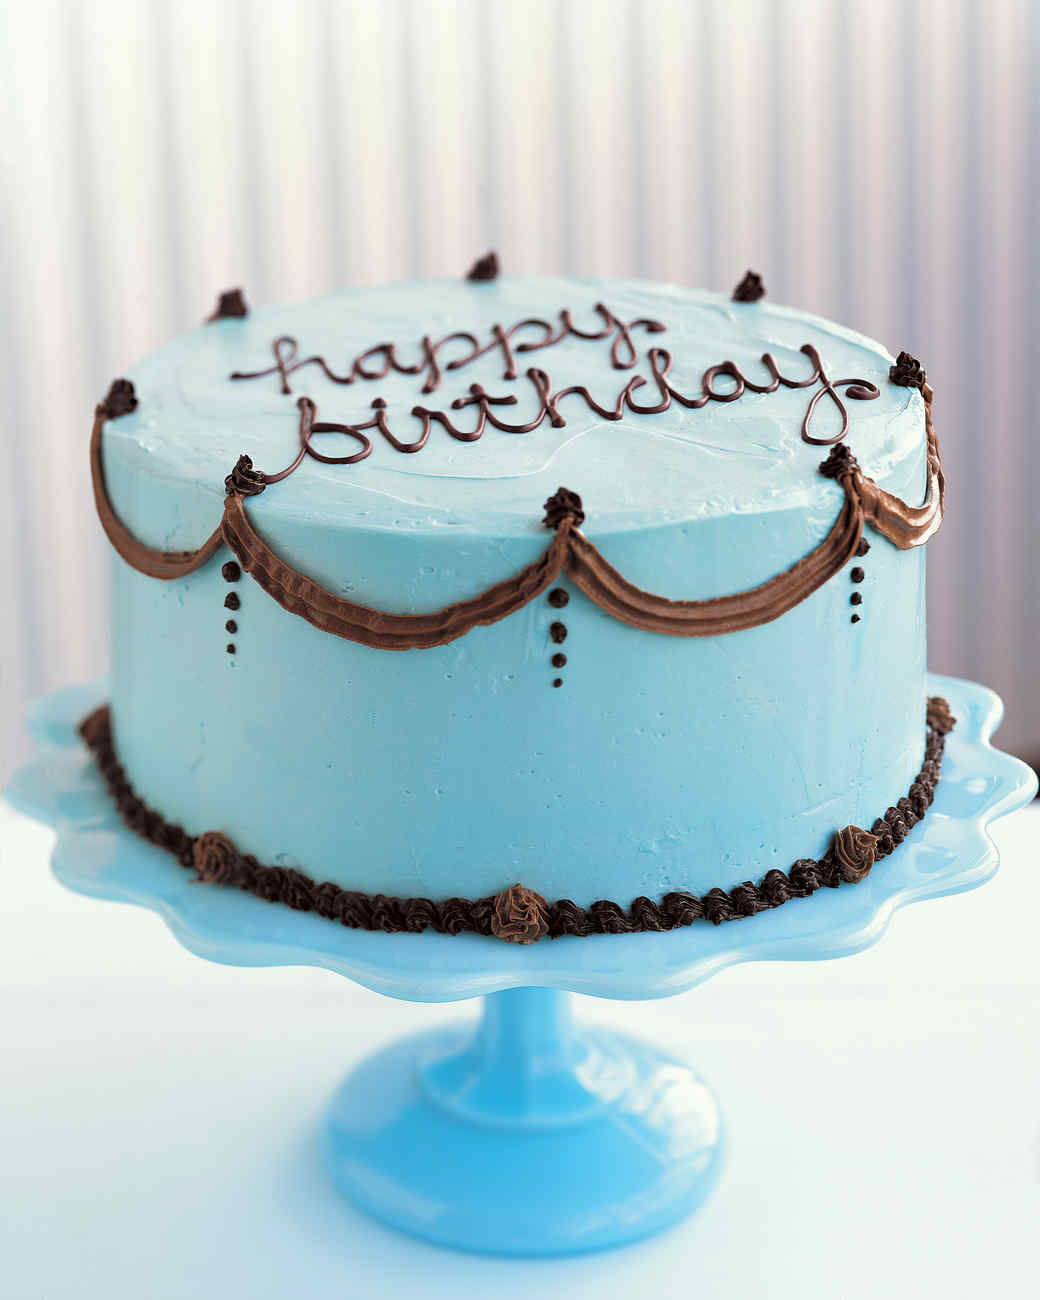 Decoration Of Birthday Cake : How to Decorate a Birthday Cake Martha Stewart